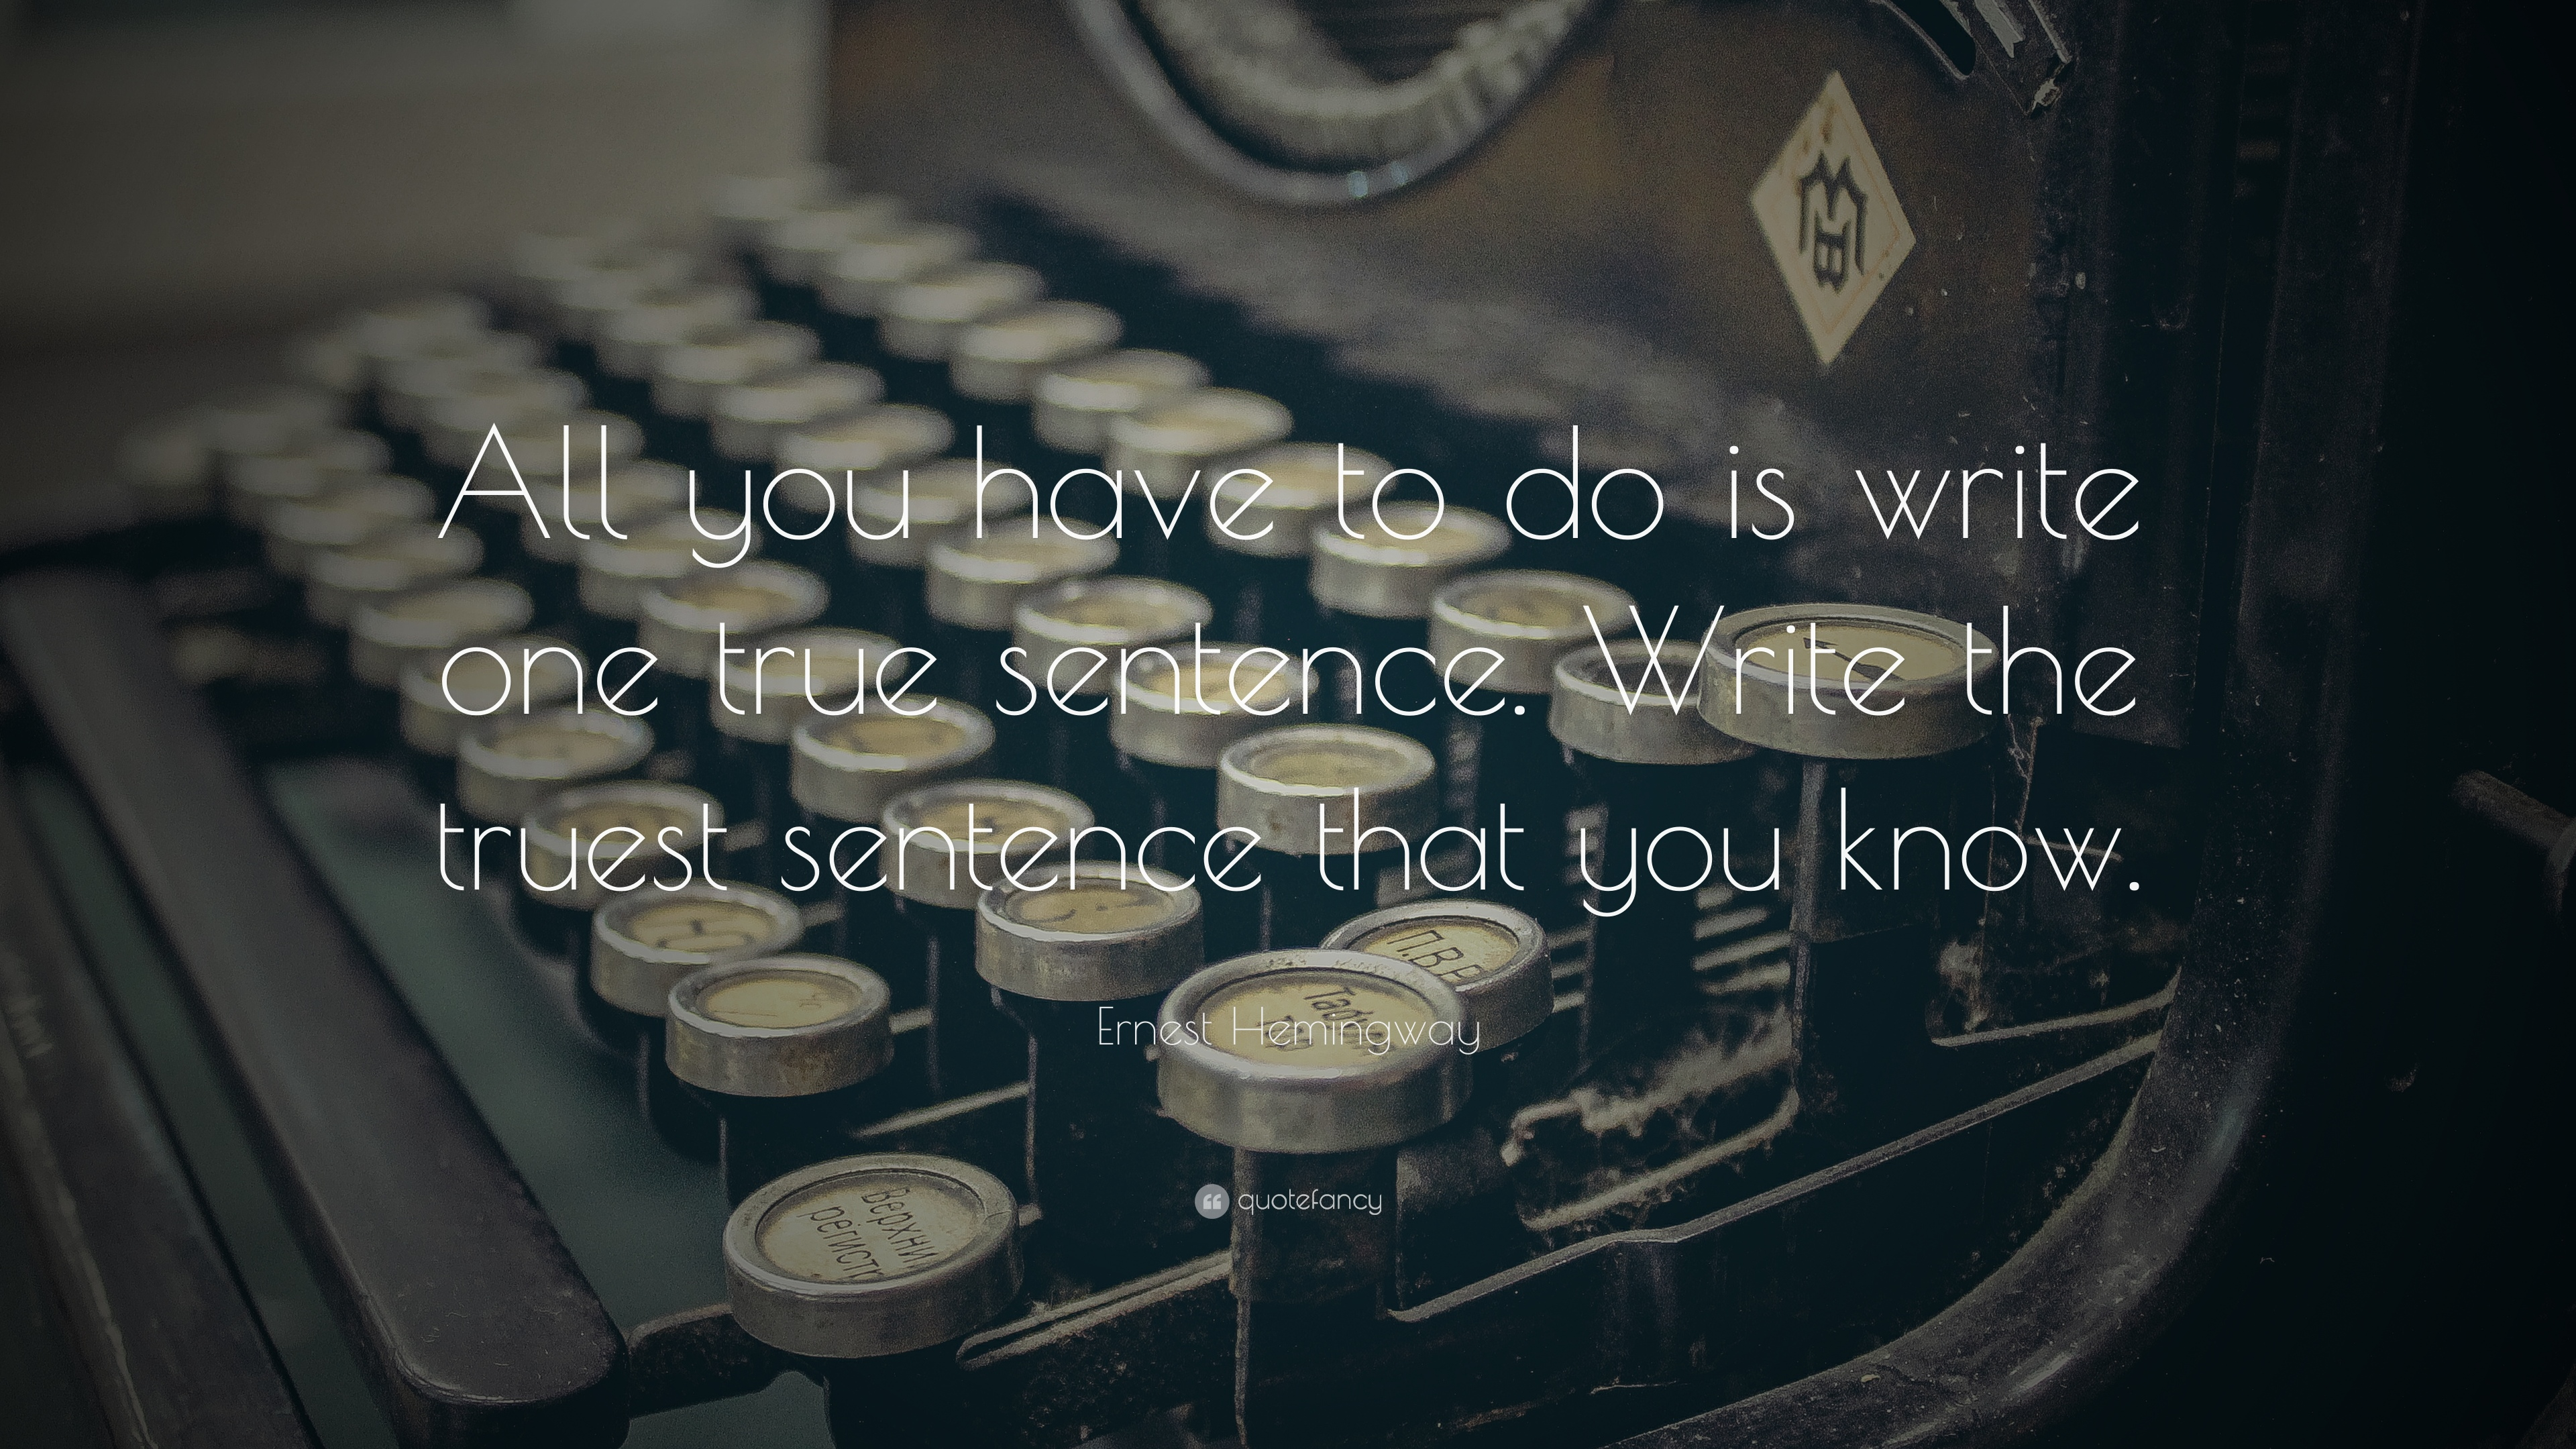 how to get the most out of ernest hemingway writing tips source quotefancy